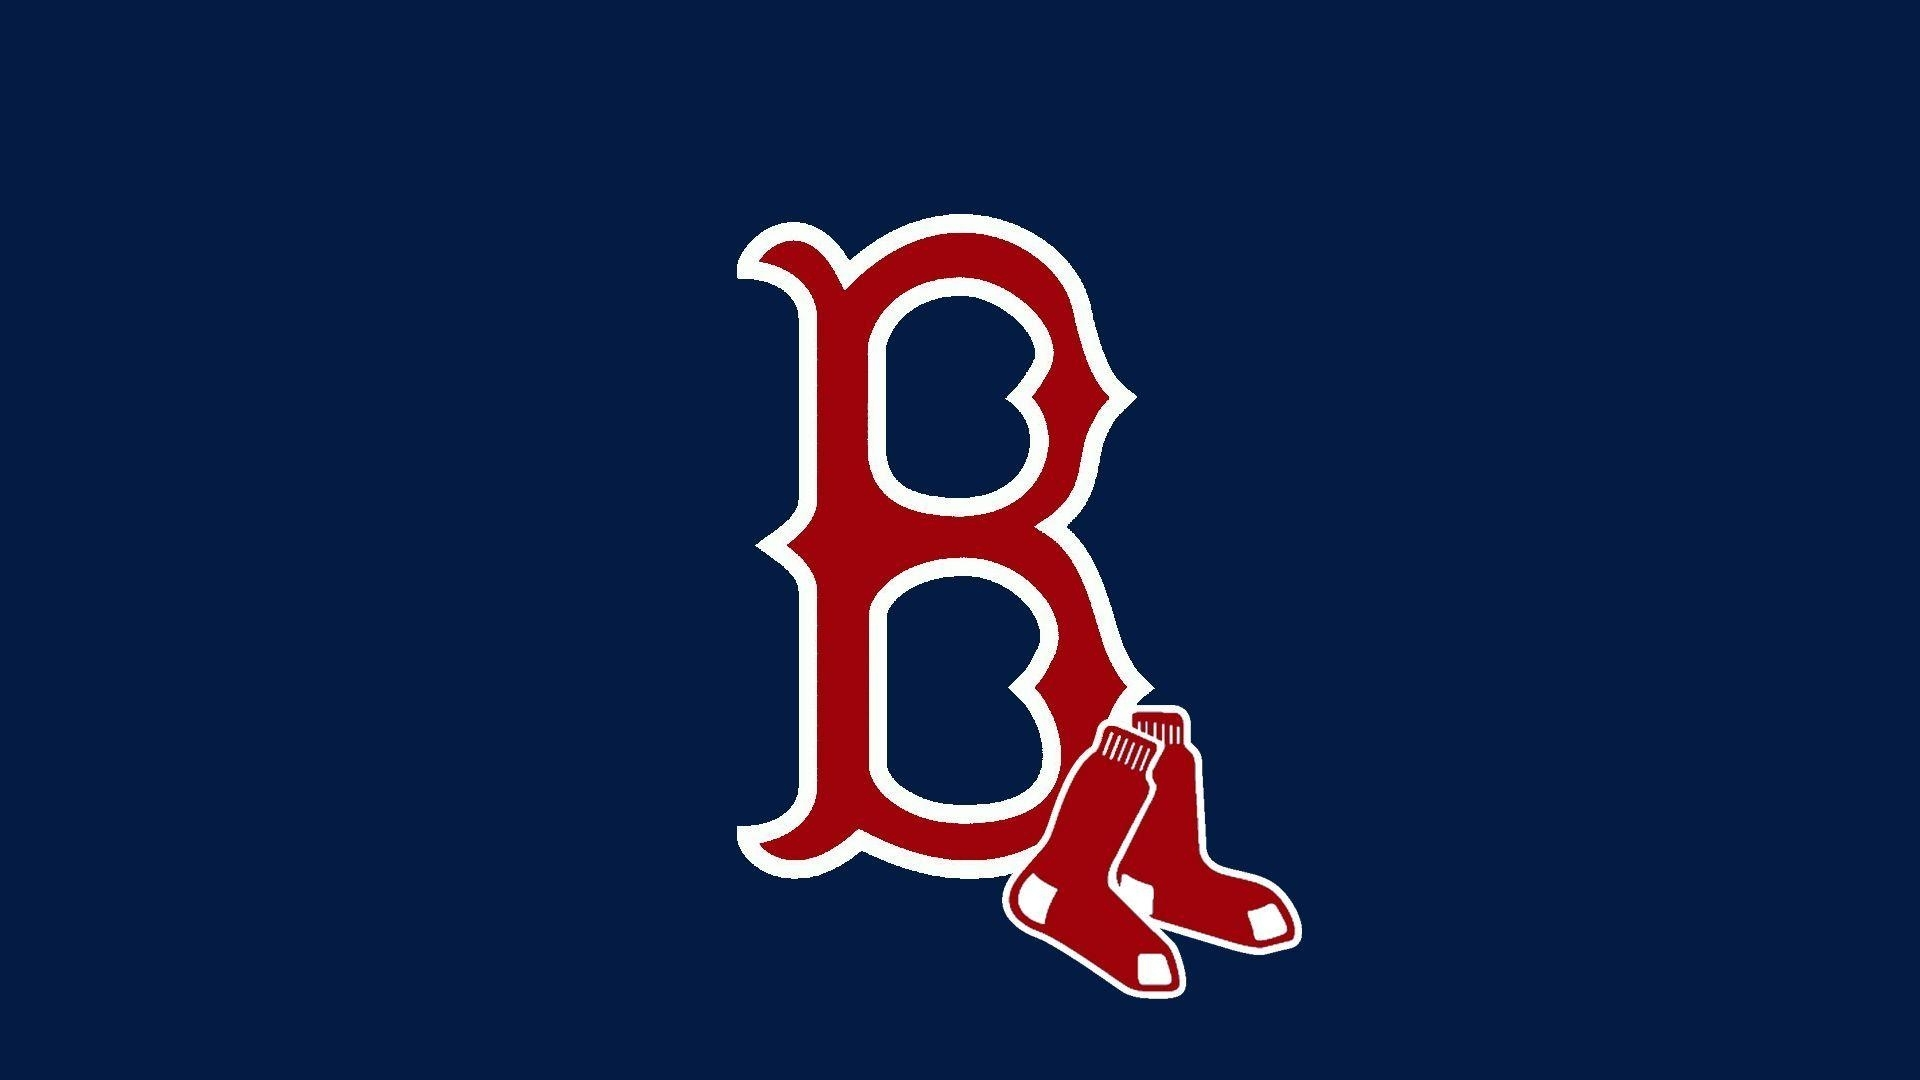 boston red sox logo wallpapers - wallpaper cave